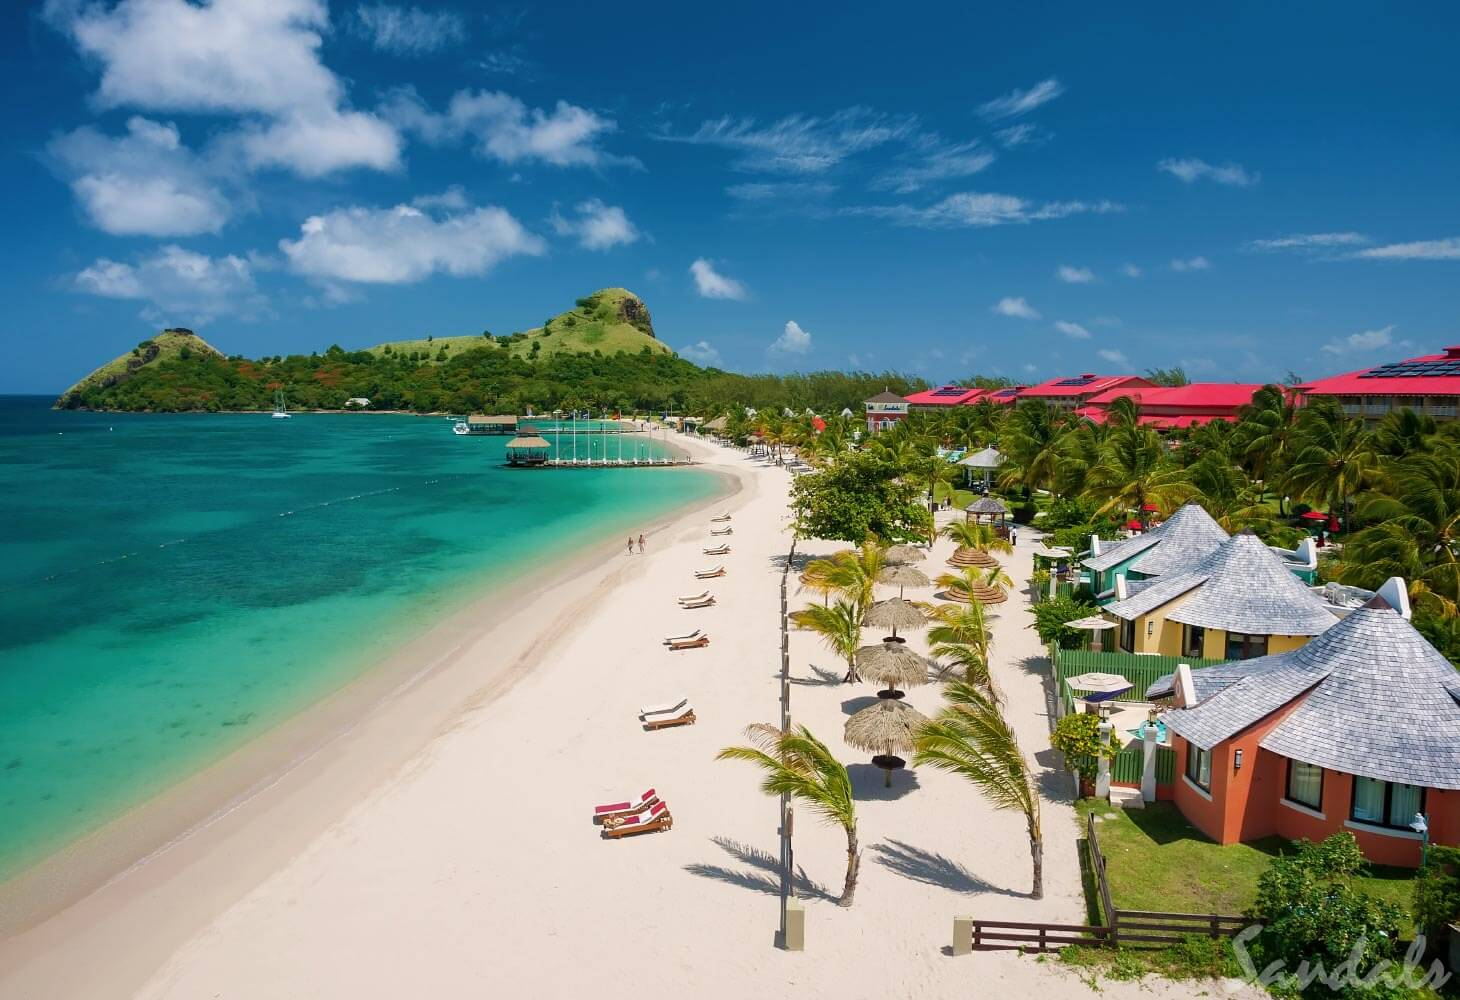 Aerial view of the beach at Sandals Grande St. Lucian Resort